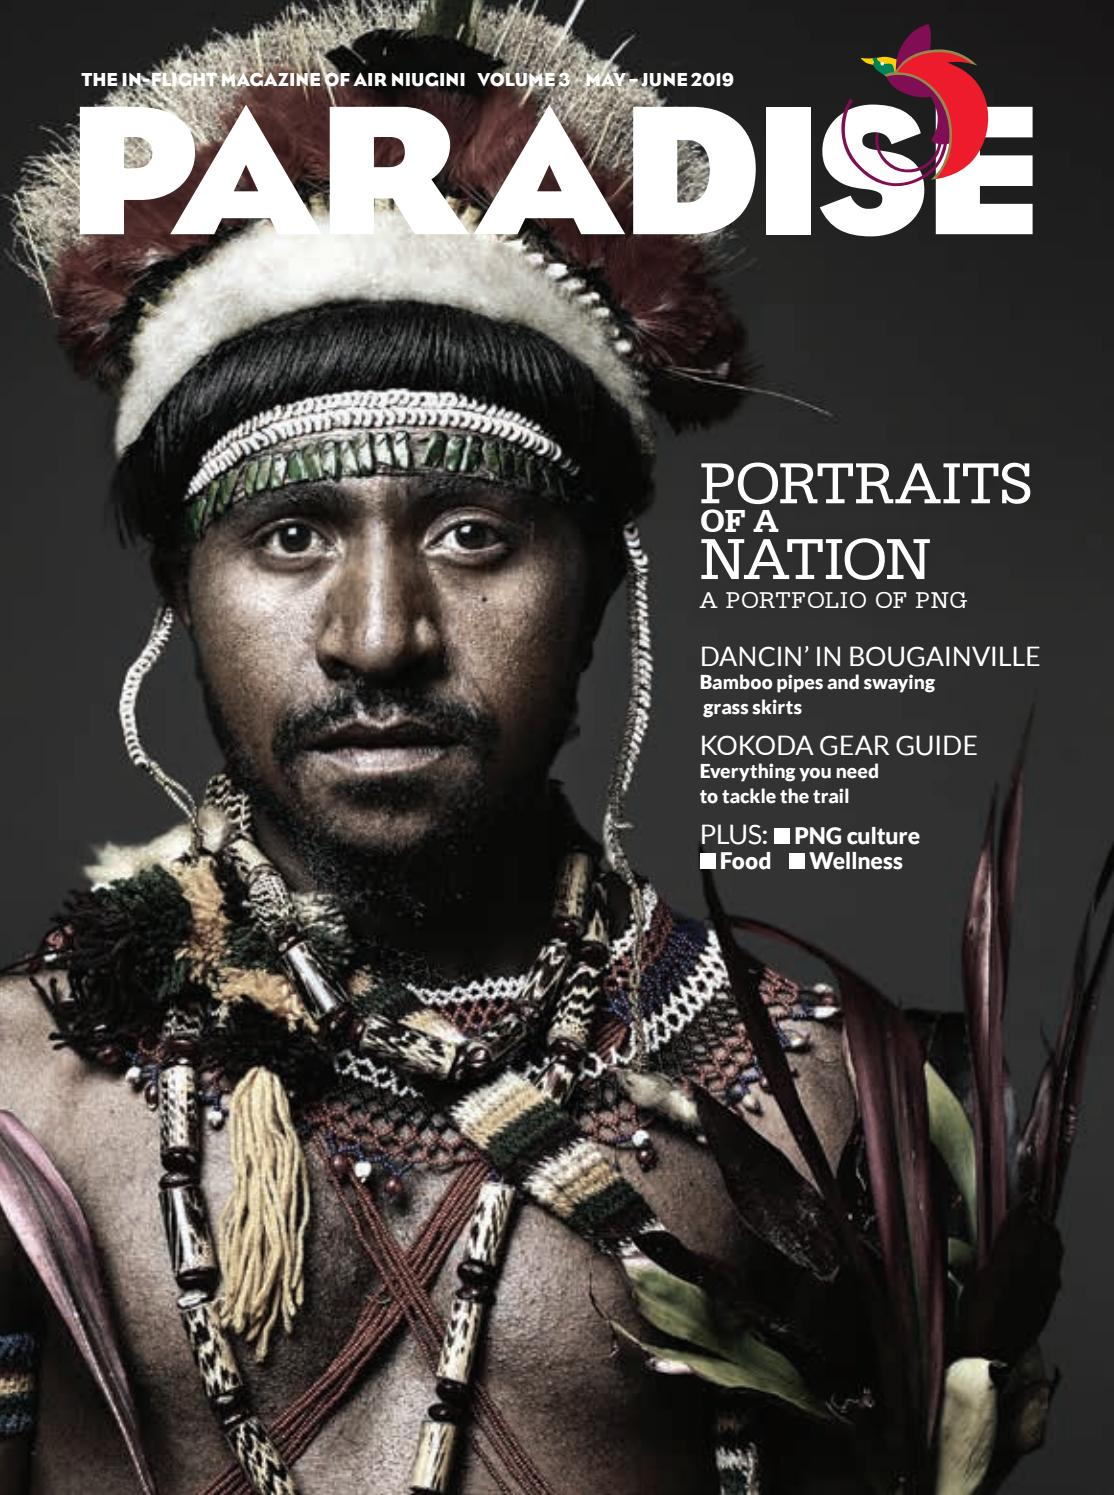 Paradise The In Flight Magazine Of Air Niugini May June 2019 By